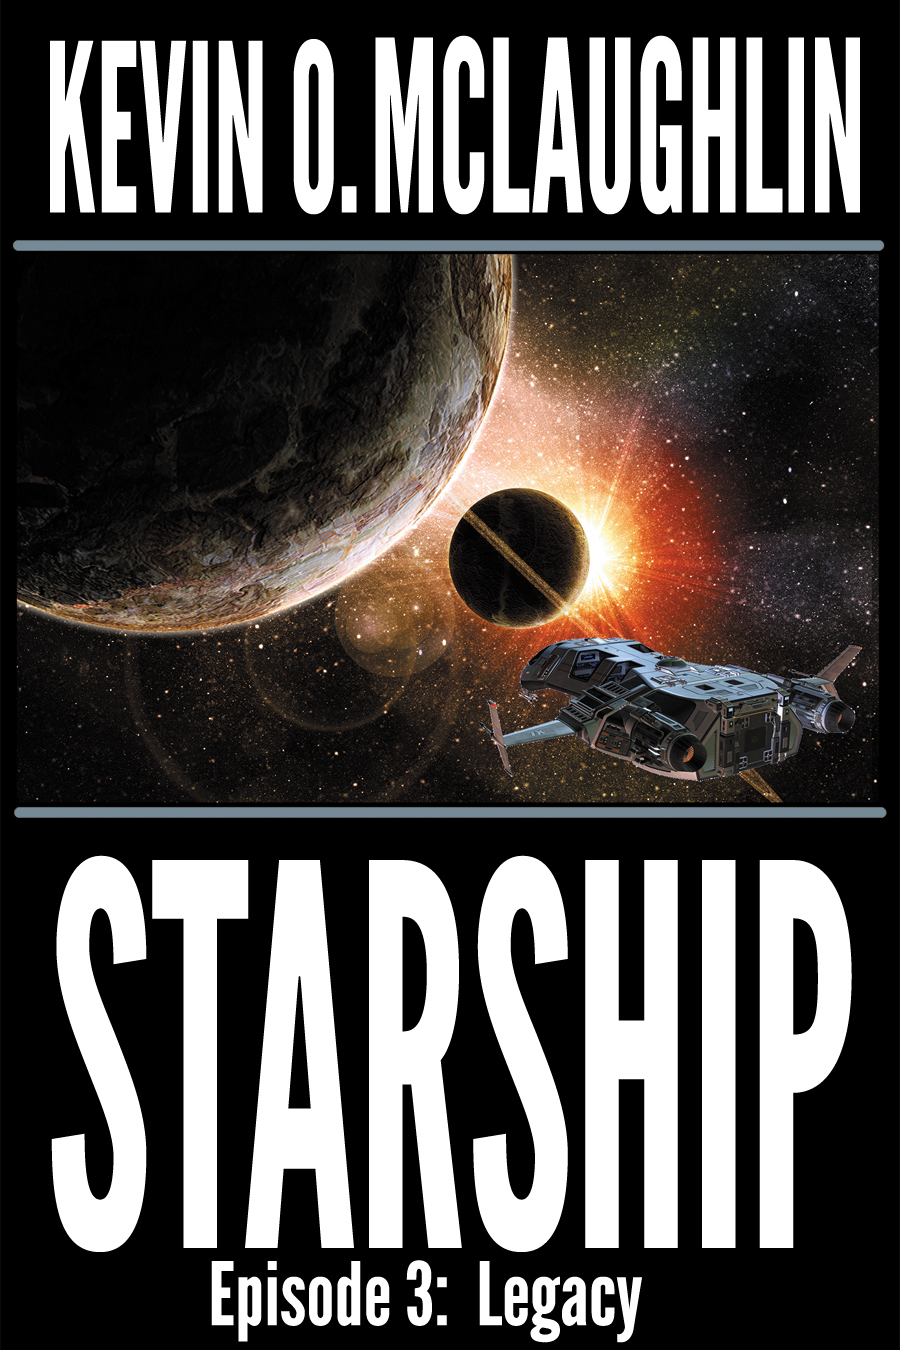 Starship Episode 3: Legacy